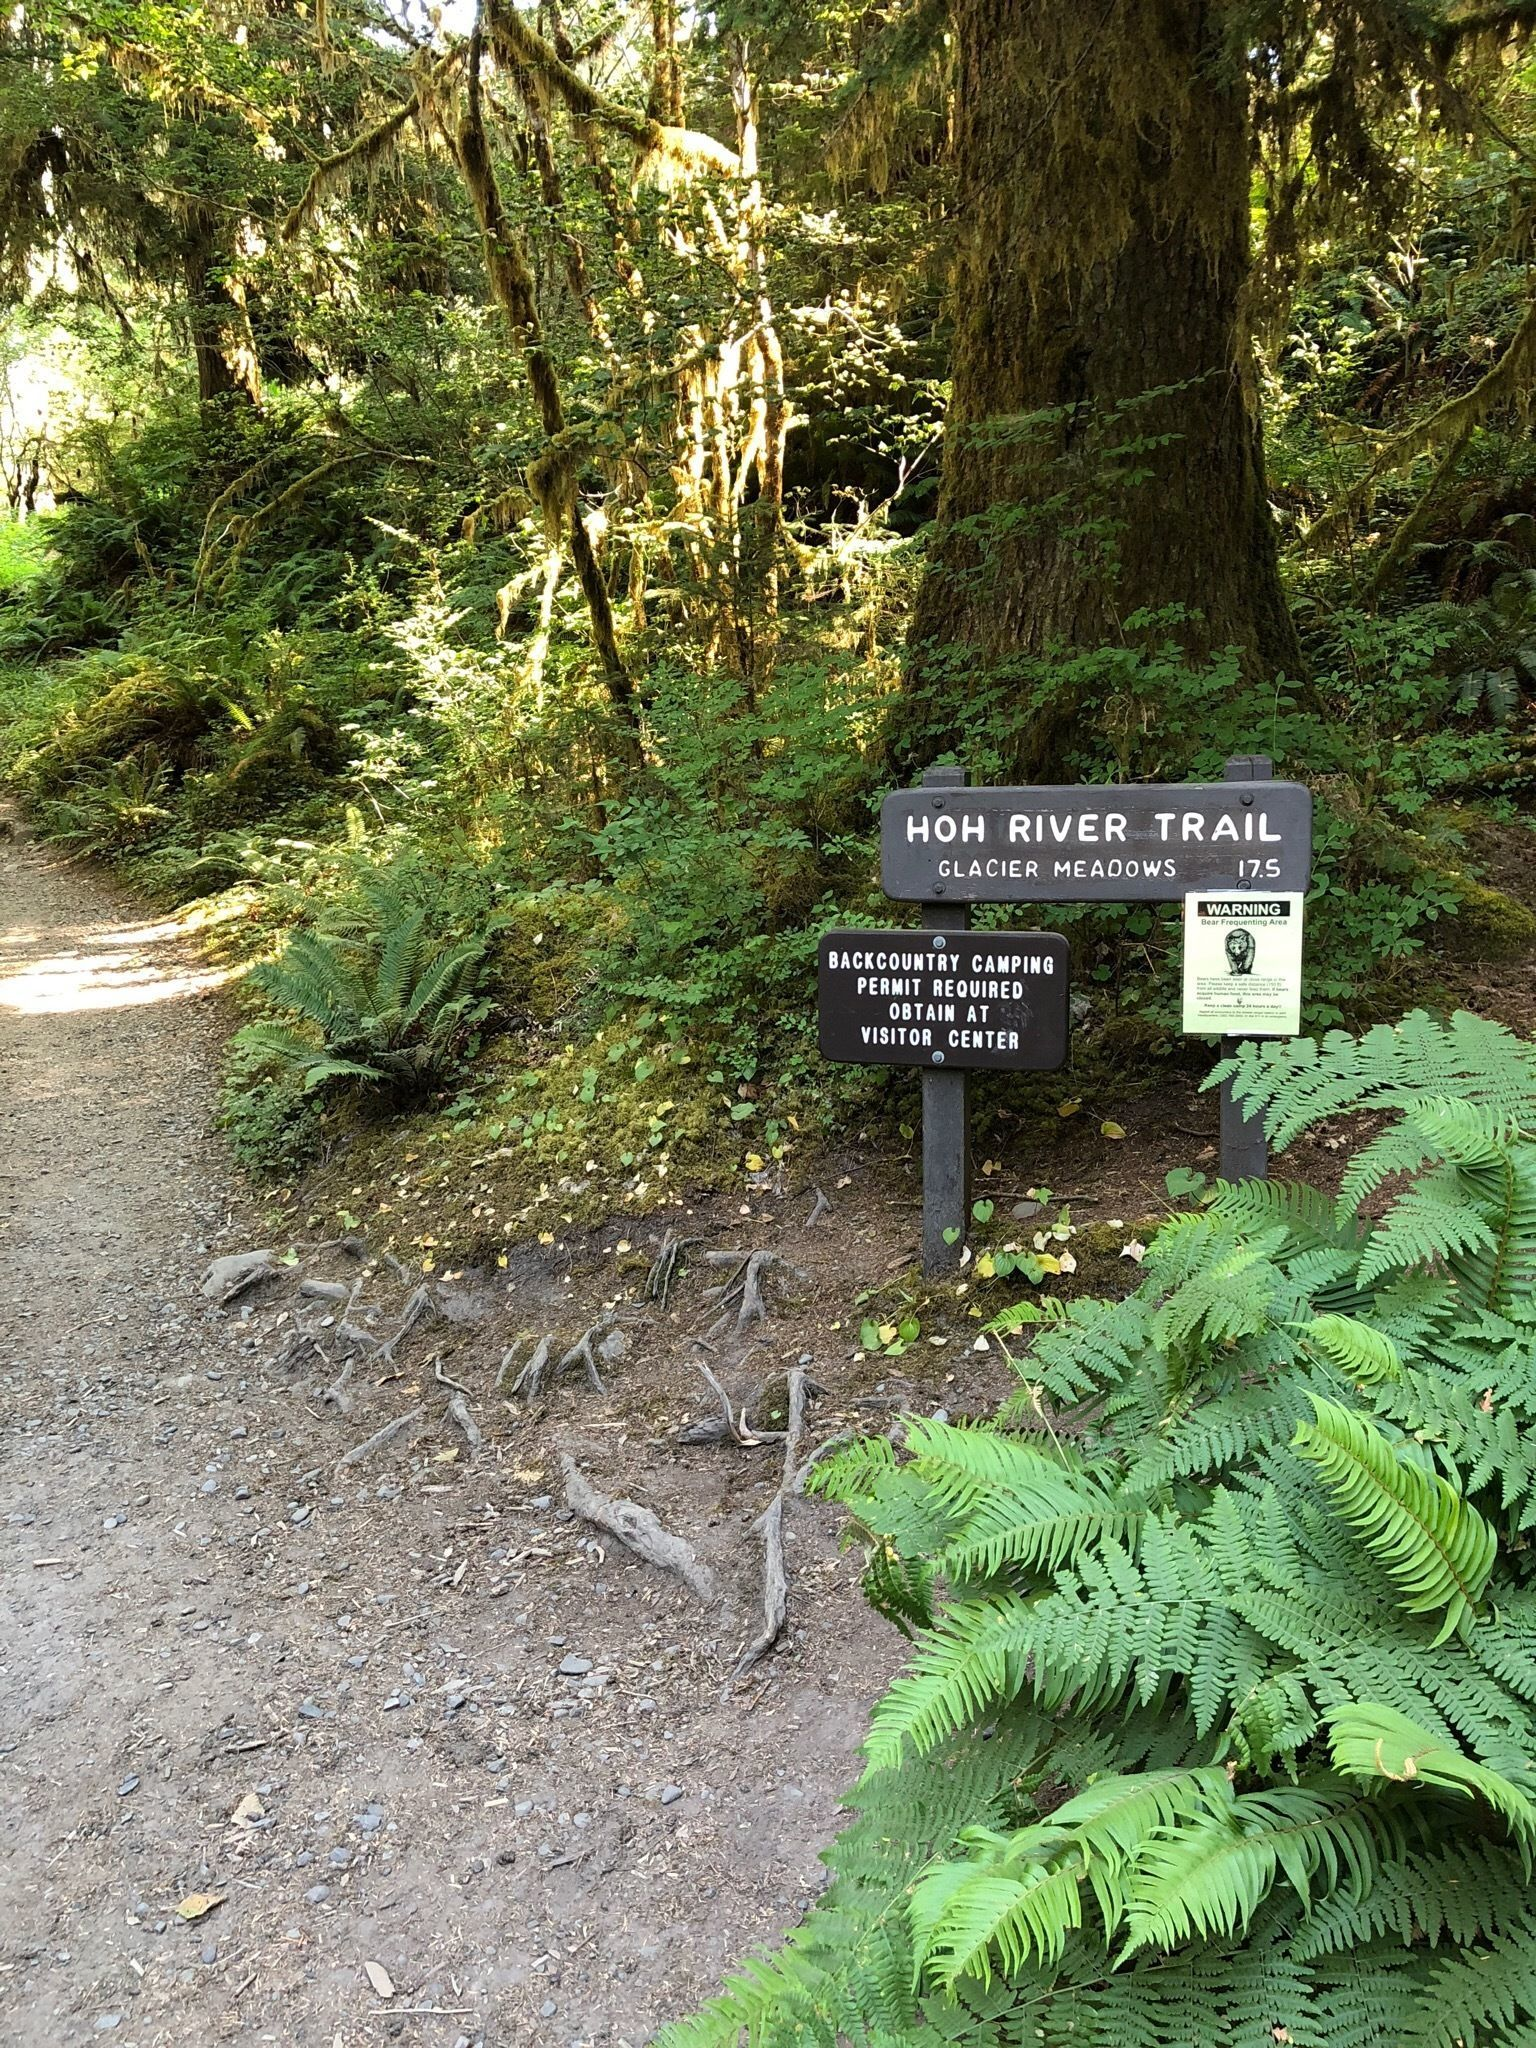 e6216f320e Hoh River Trail - Washington